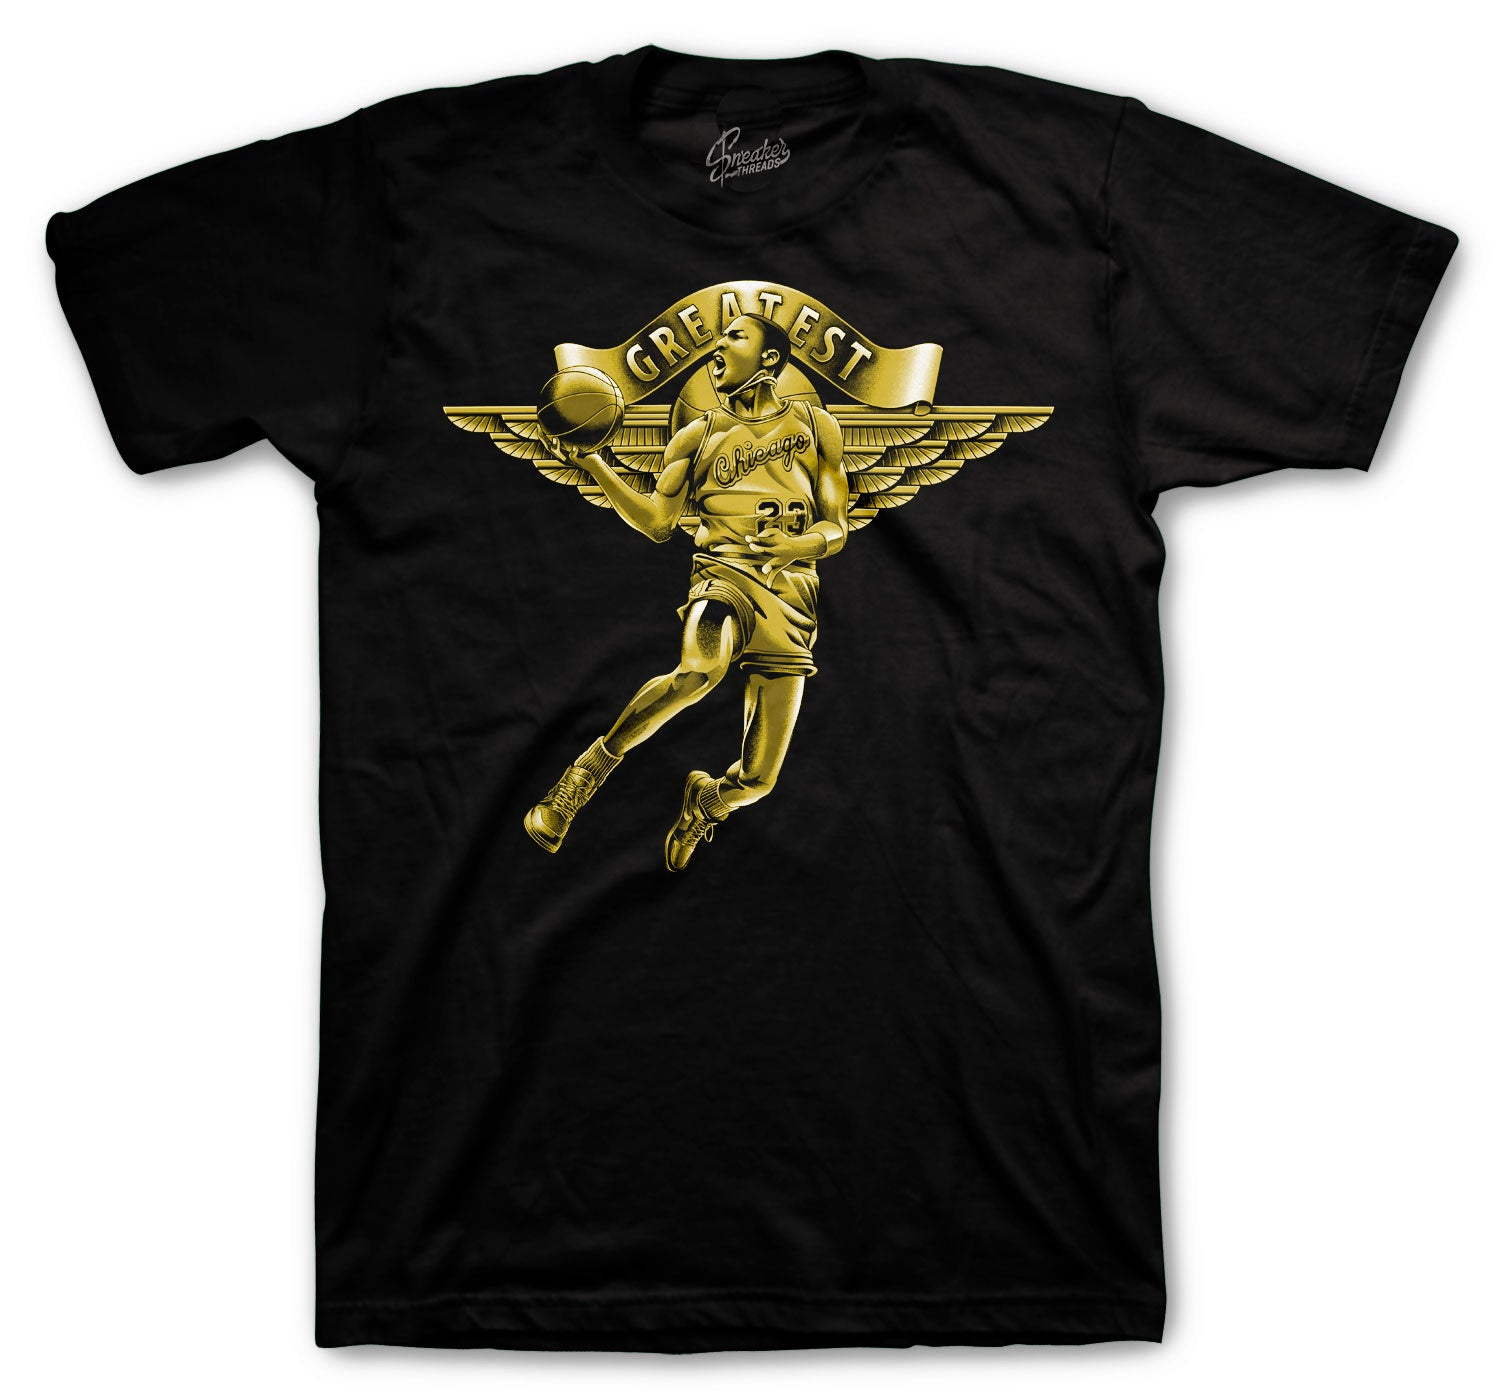 shirts matching with mens sneaker Jordan 1 black gold